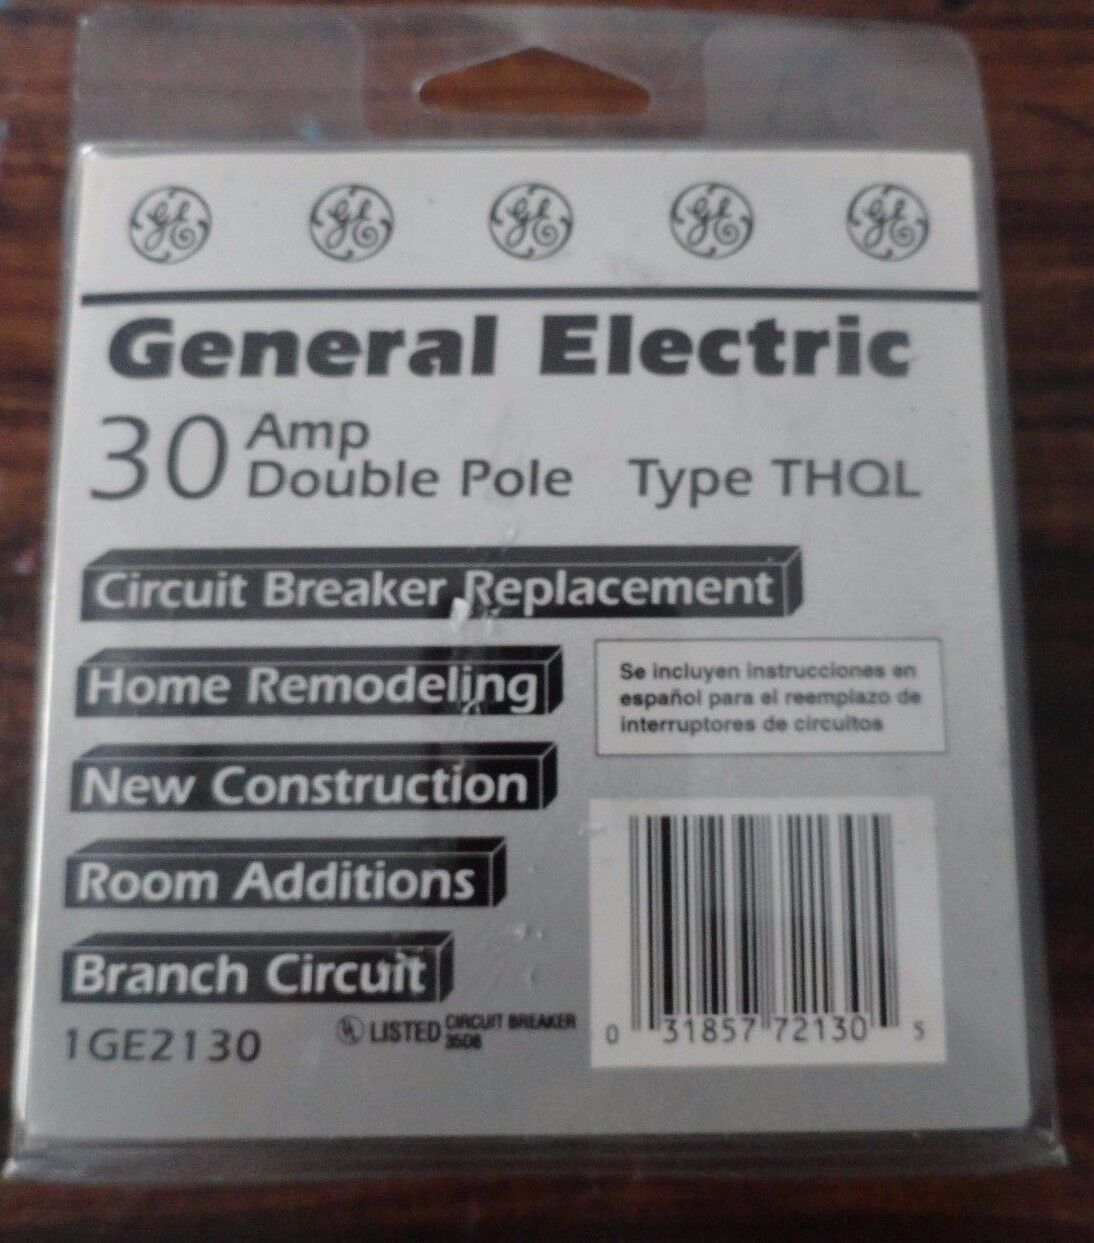 General Electric 30 Amp Double Pole Circuit Breaker Type Thql Fuse Box For Home 1ge2130 Ebay